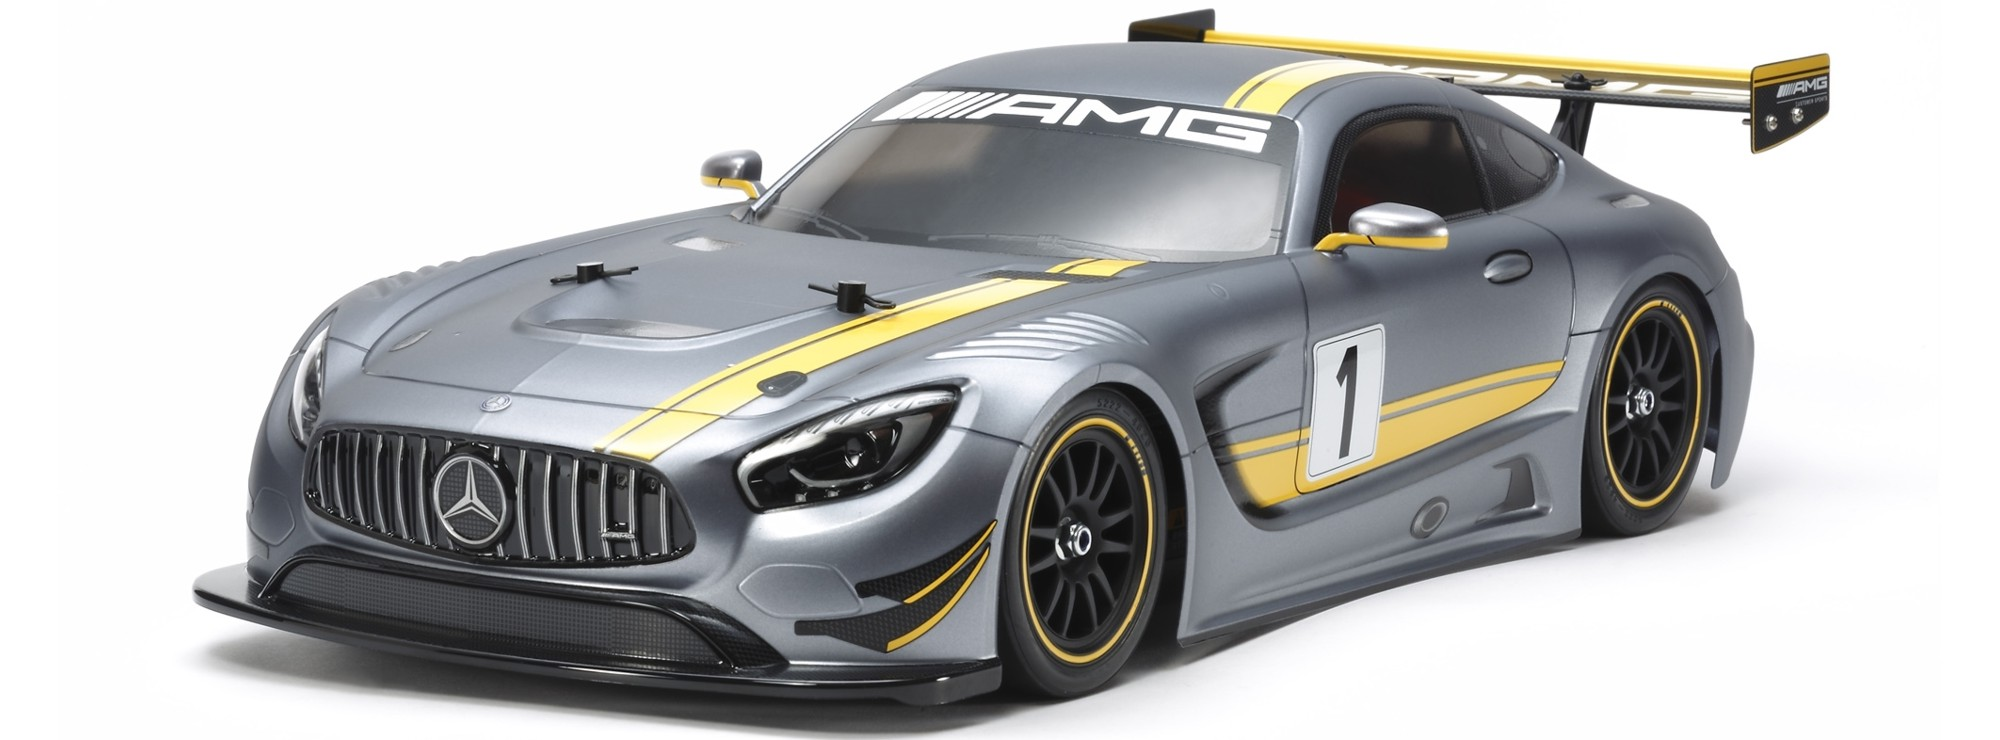 Tamiya Mercedes AMG GT3 TT -02 With ESC